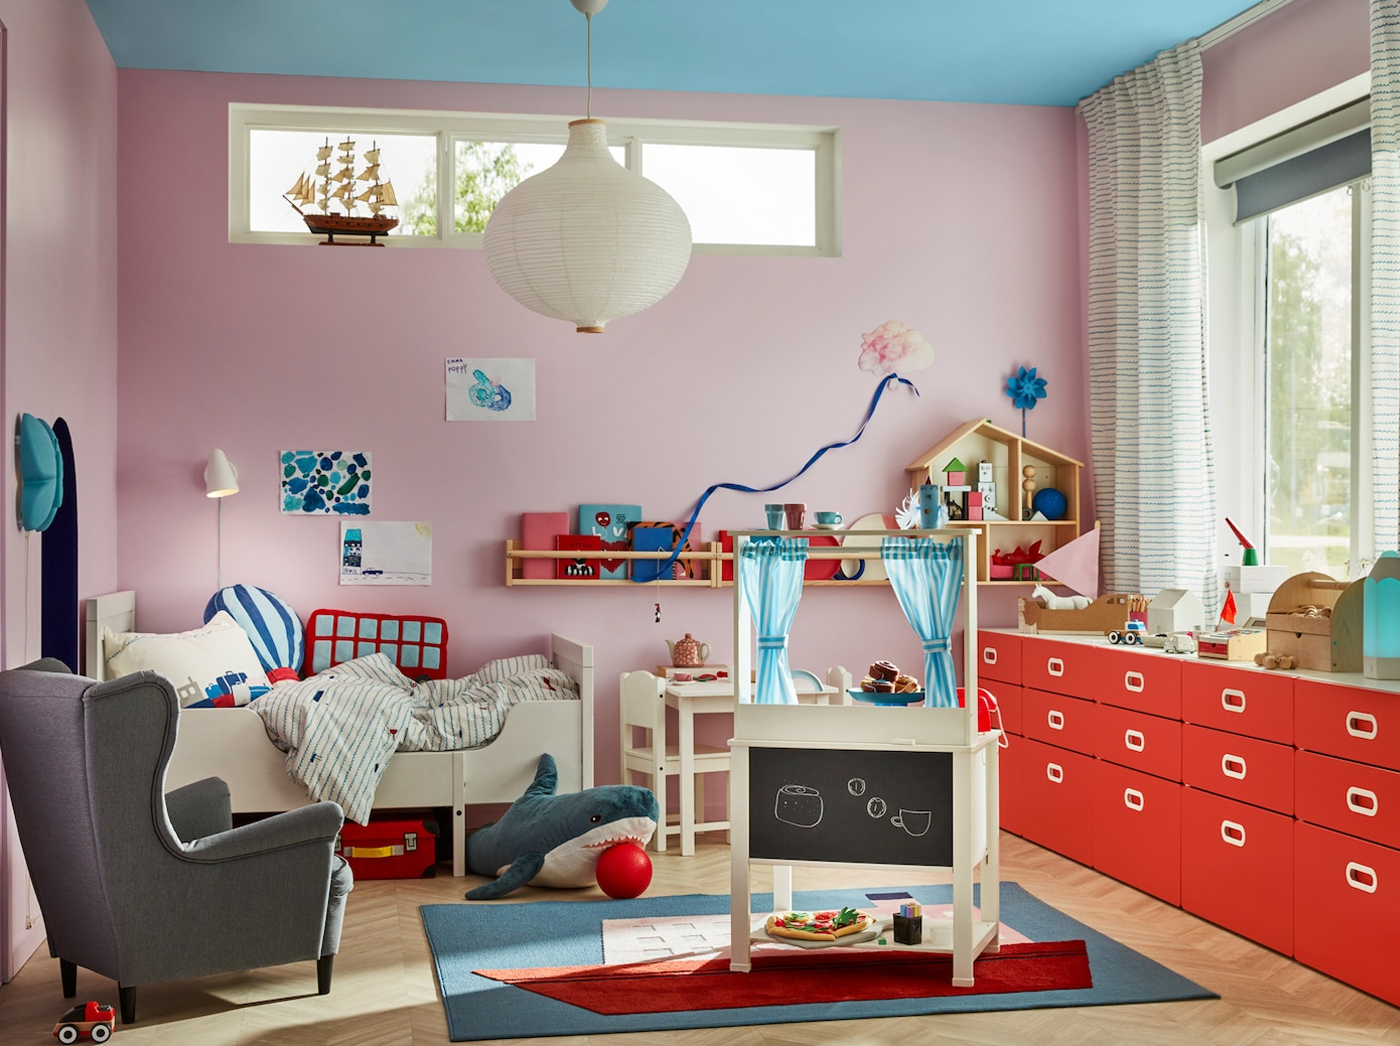 Travel the world in a children's room